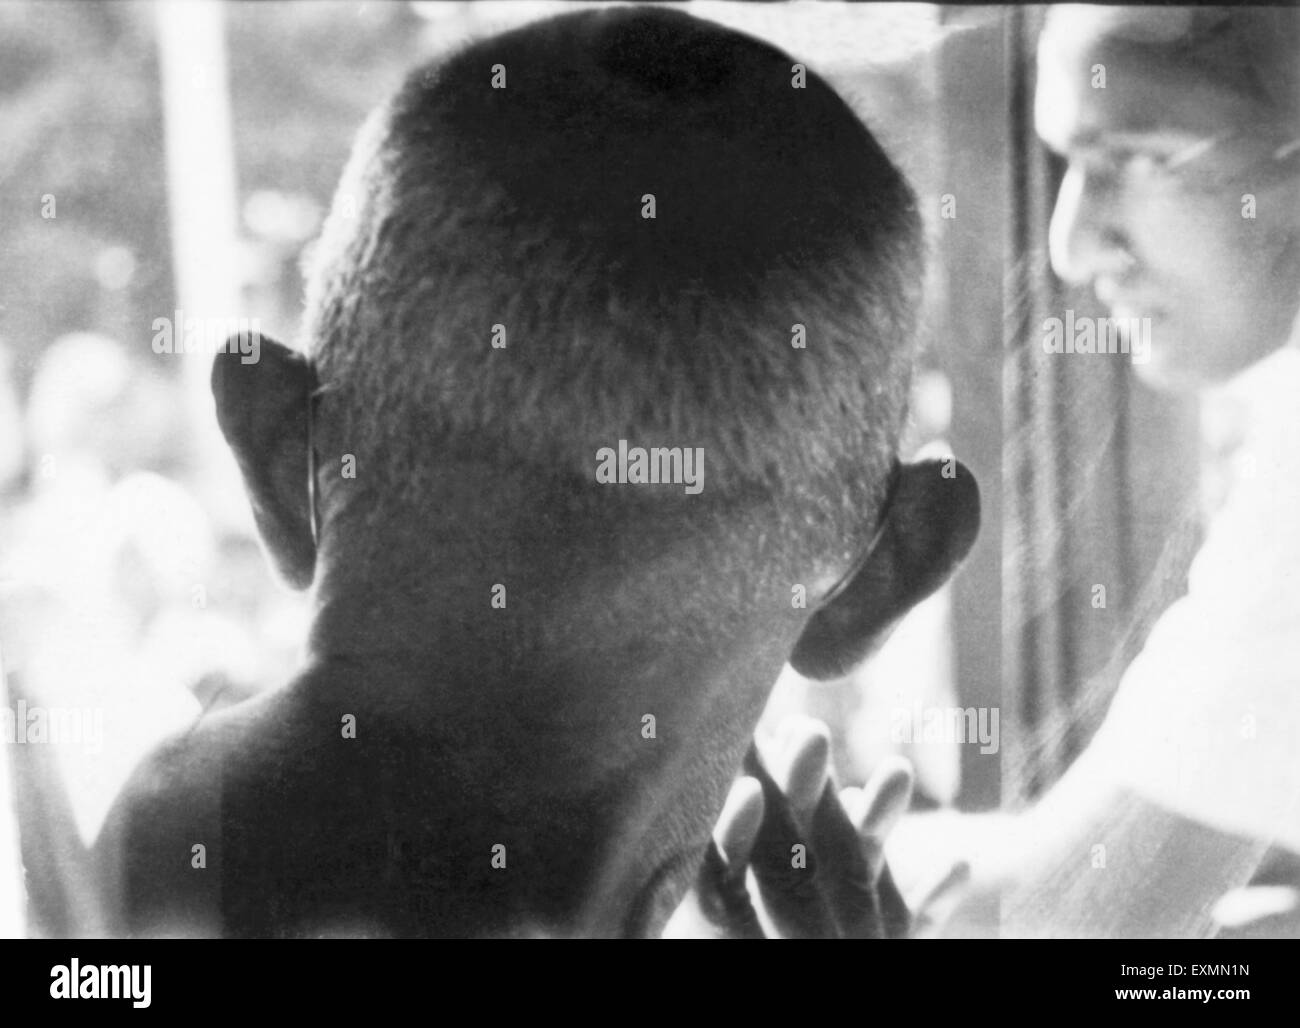 Mahatma Gandhi from rear during a train journey india 1945 - Stock Image